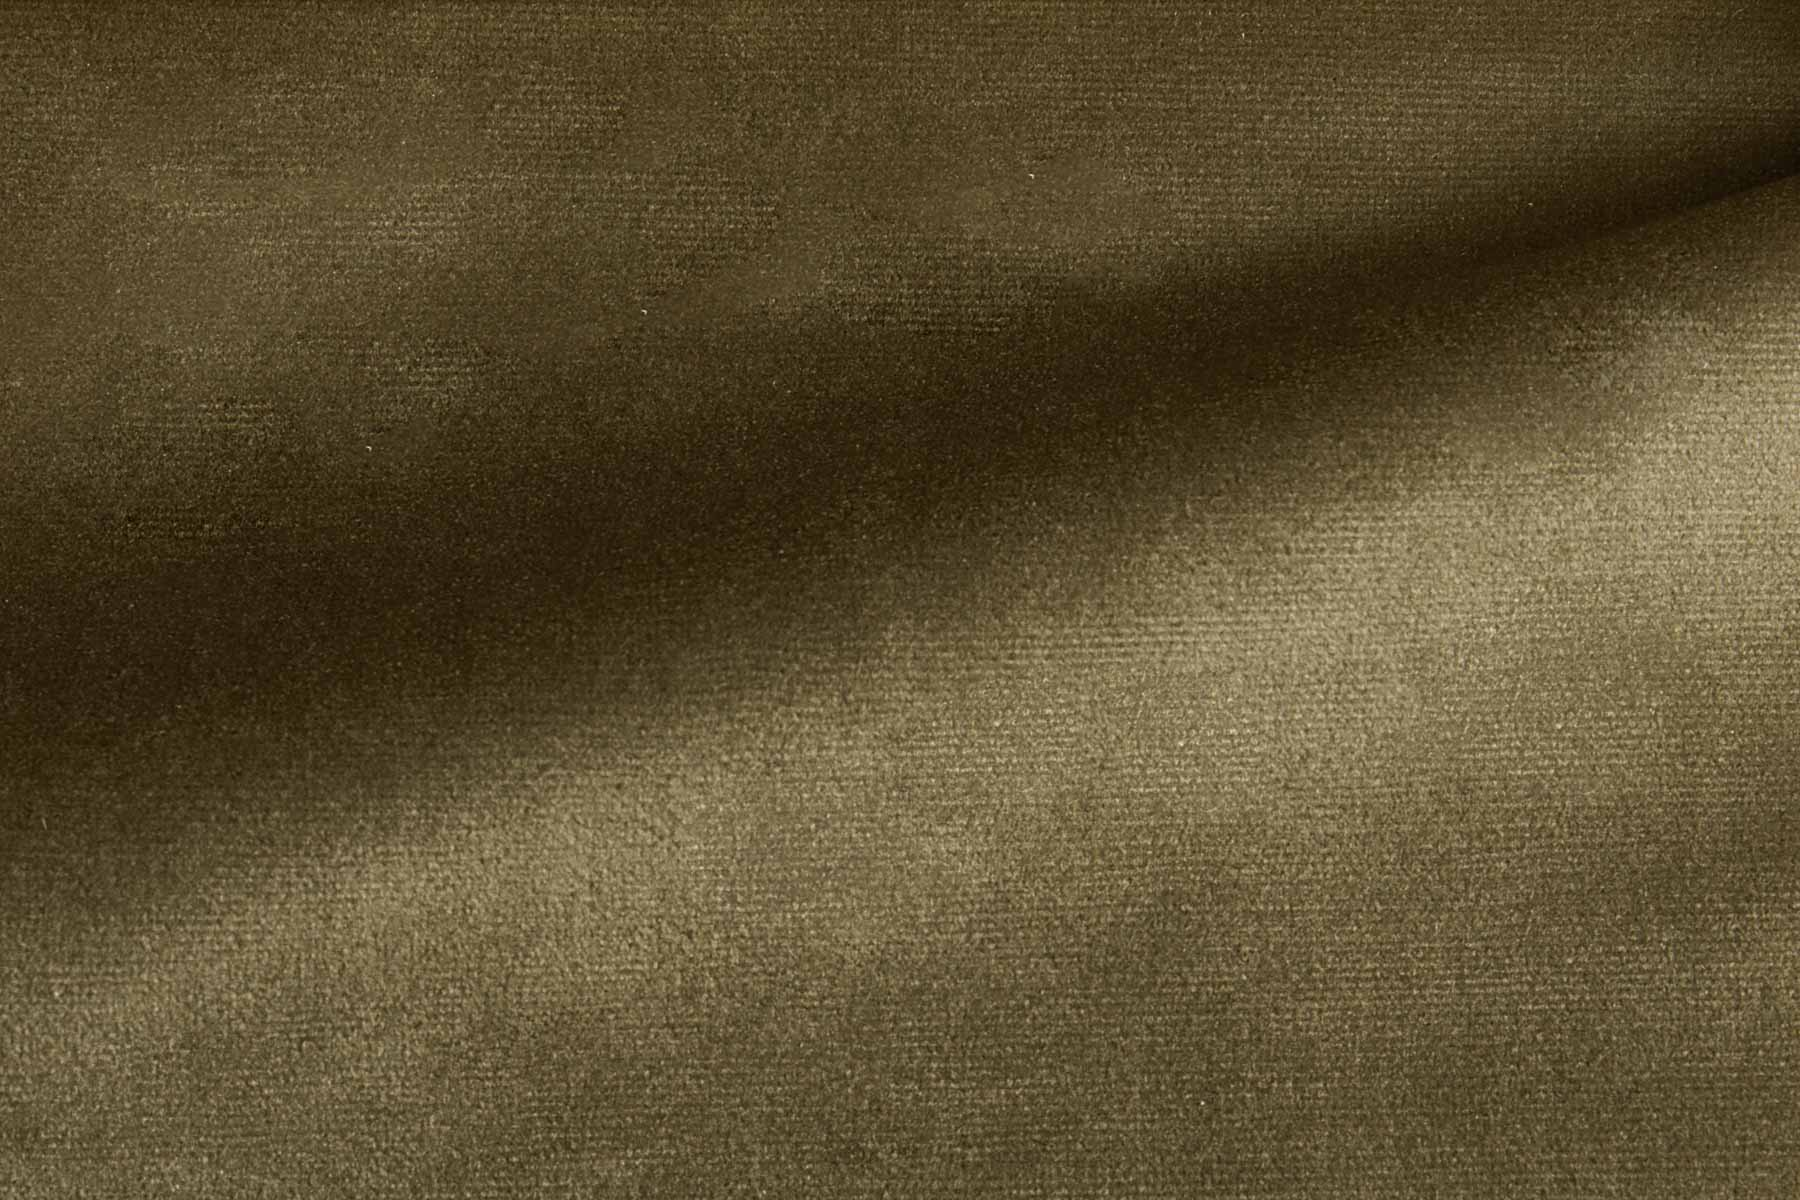 PARIS VELVET TAUPE Fabric by KOKET